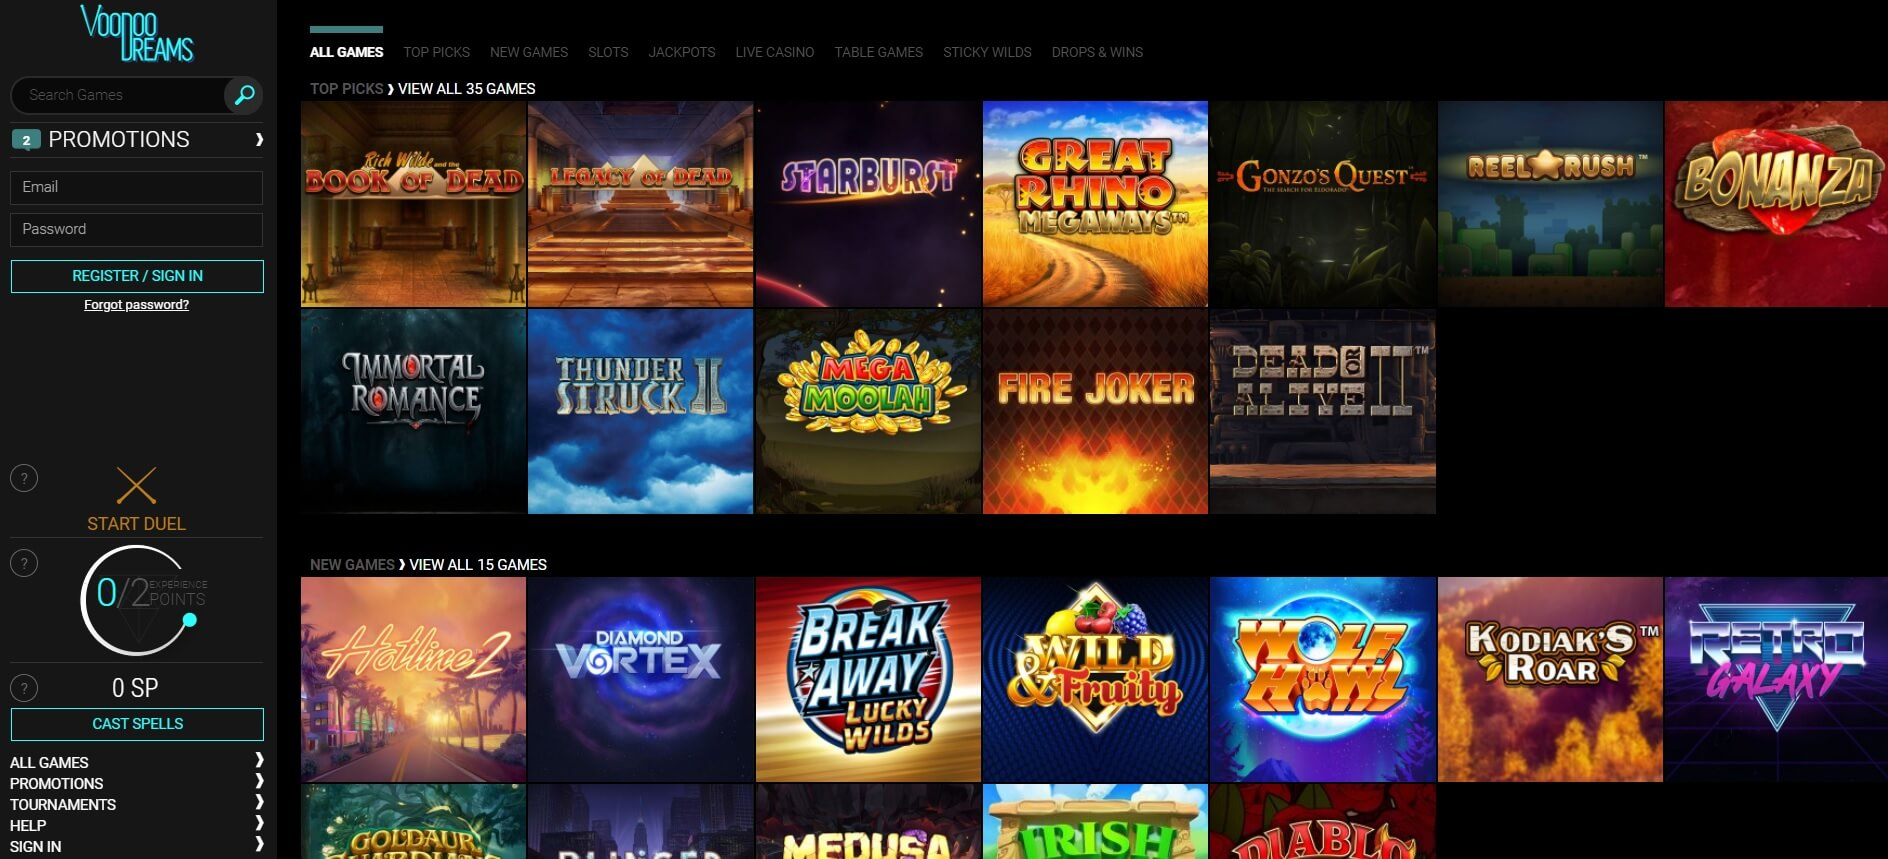 voodoo dreams casino review games slots